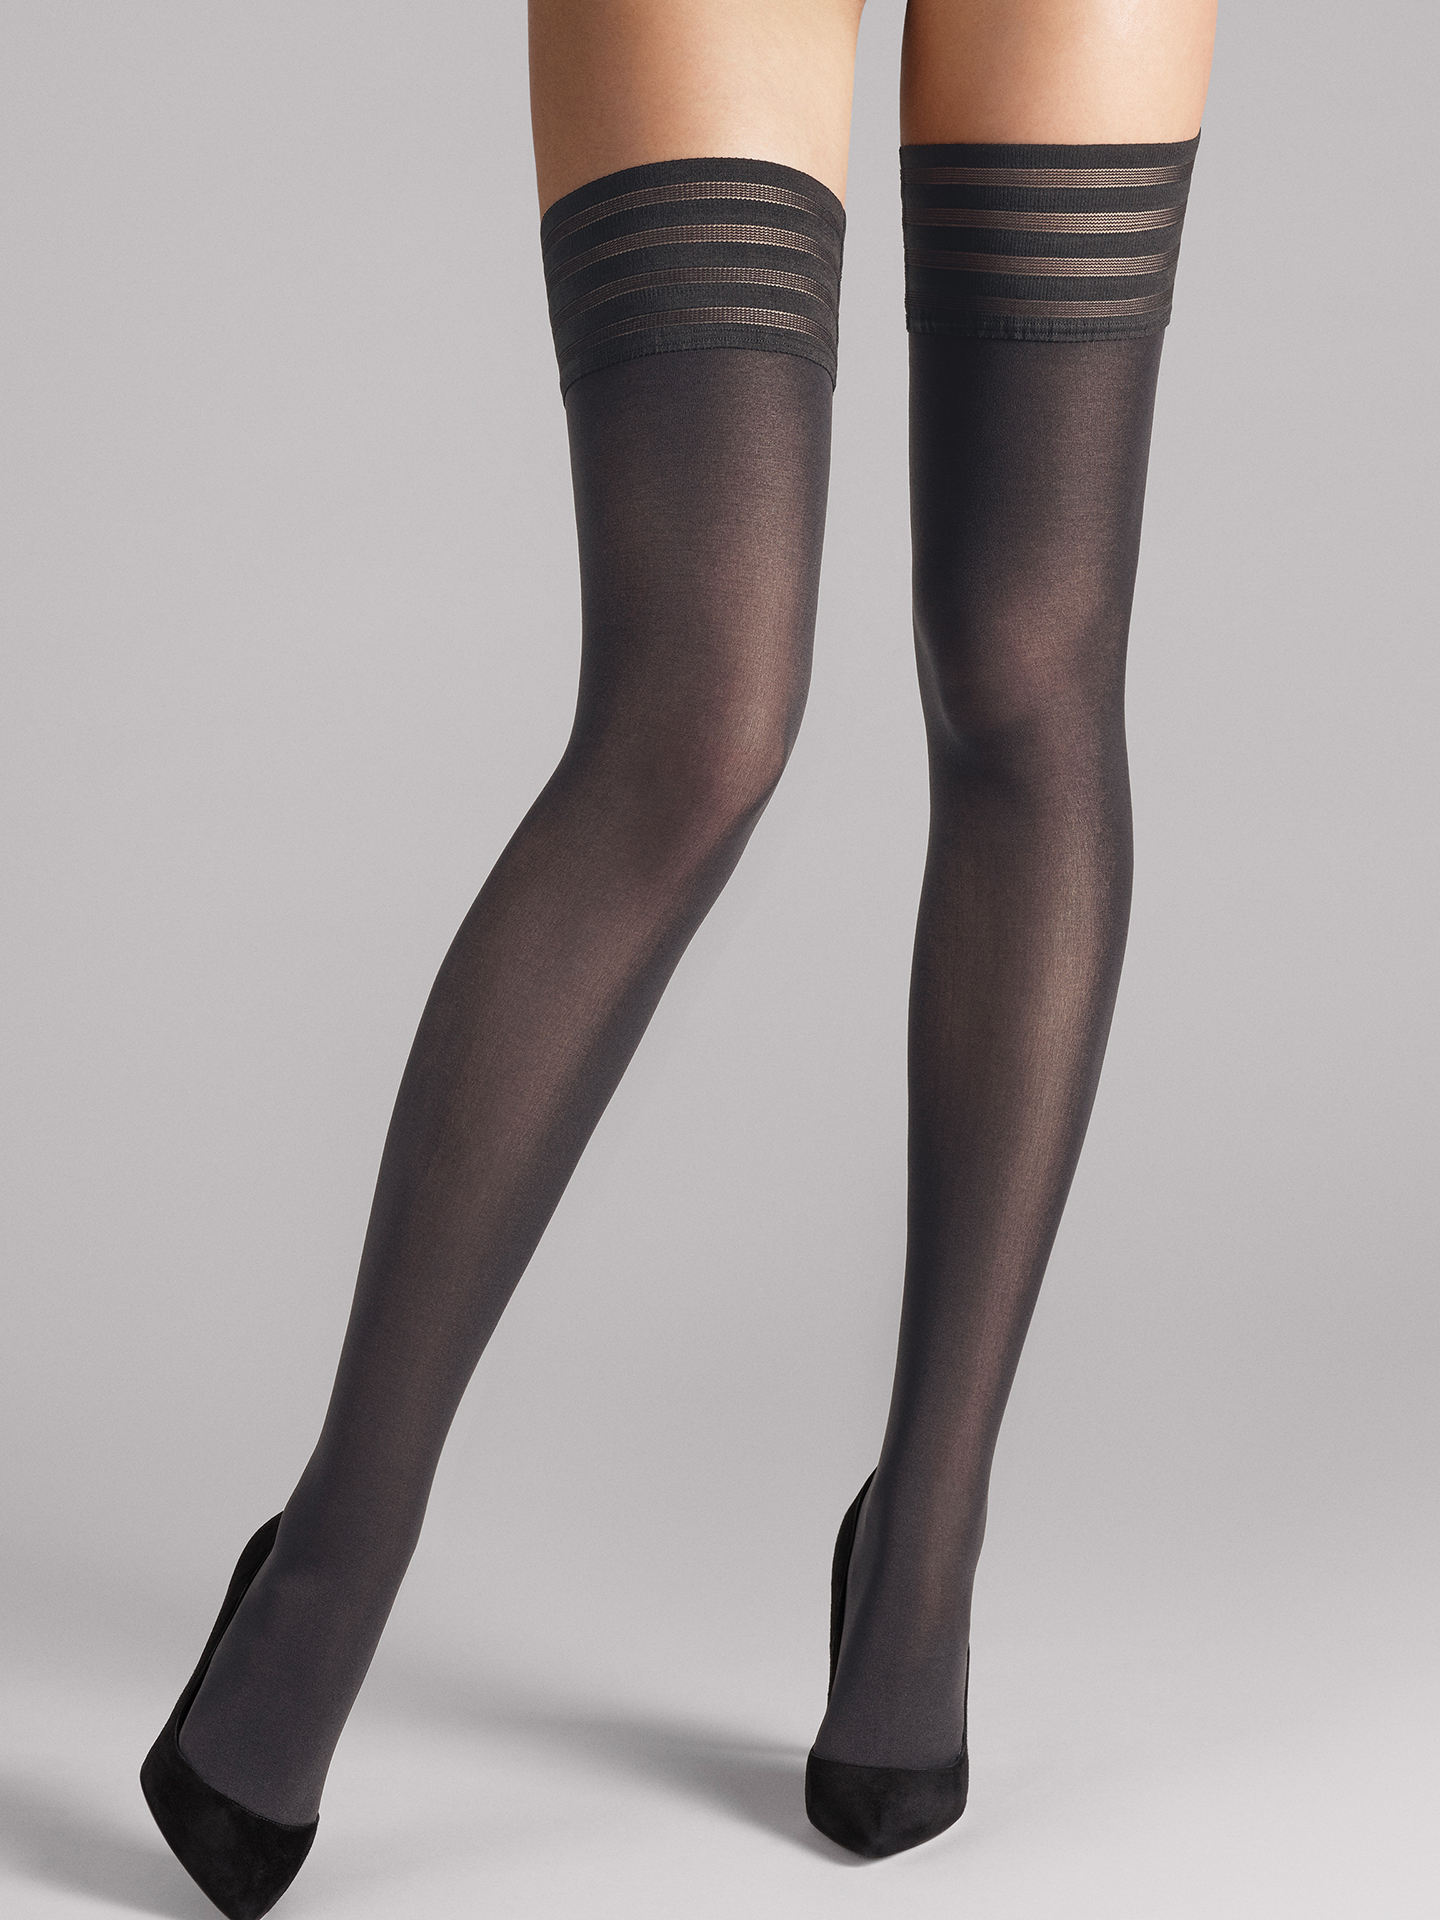 Wolford Apparel & Accessories > Clothing > Autoreggenti & Calze Velvet de Luxe 50 Stay-Up - 7221 - XS